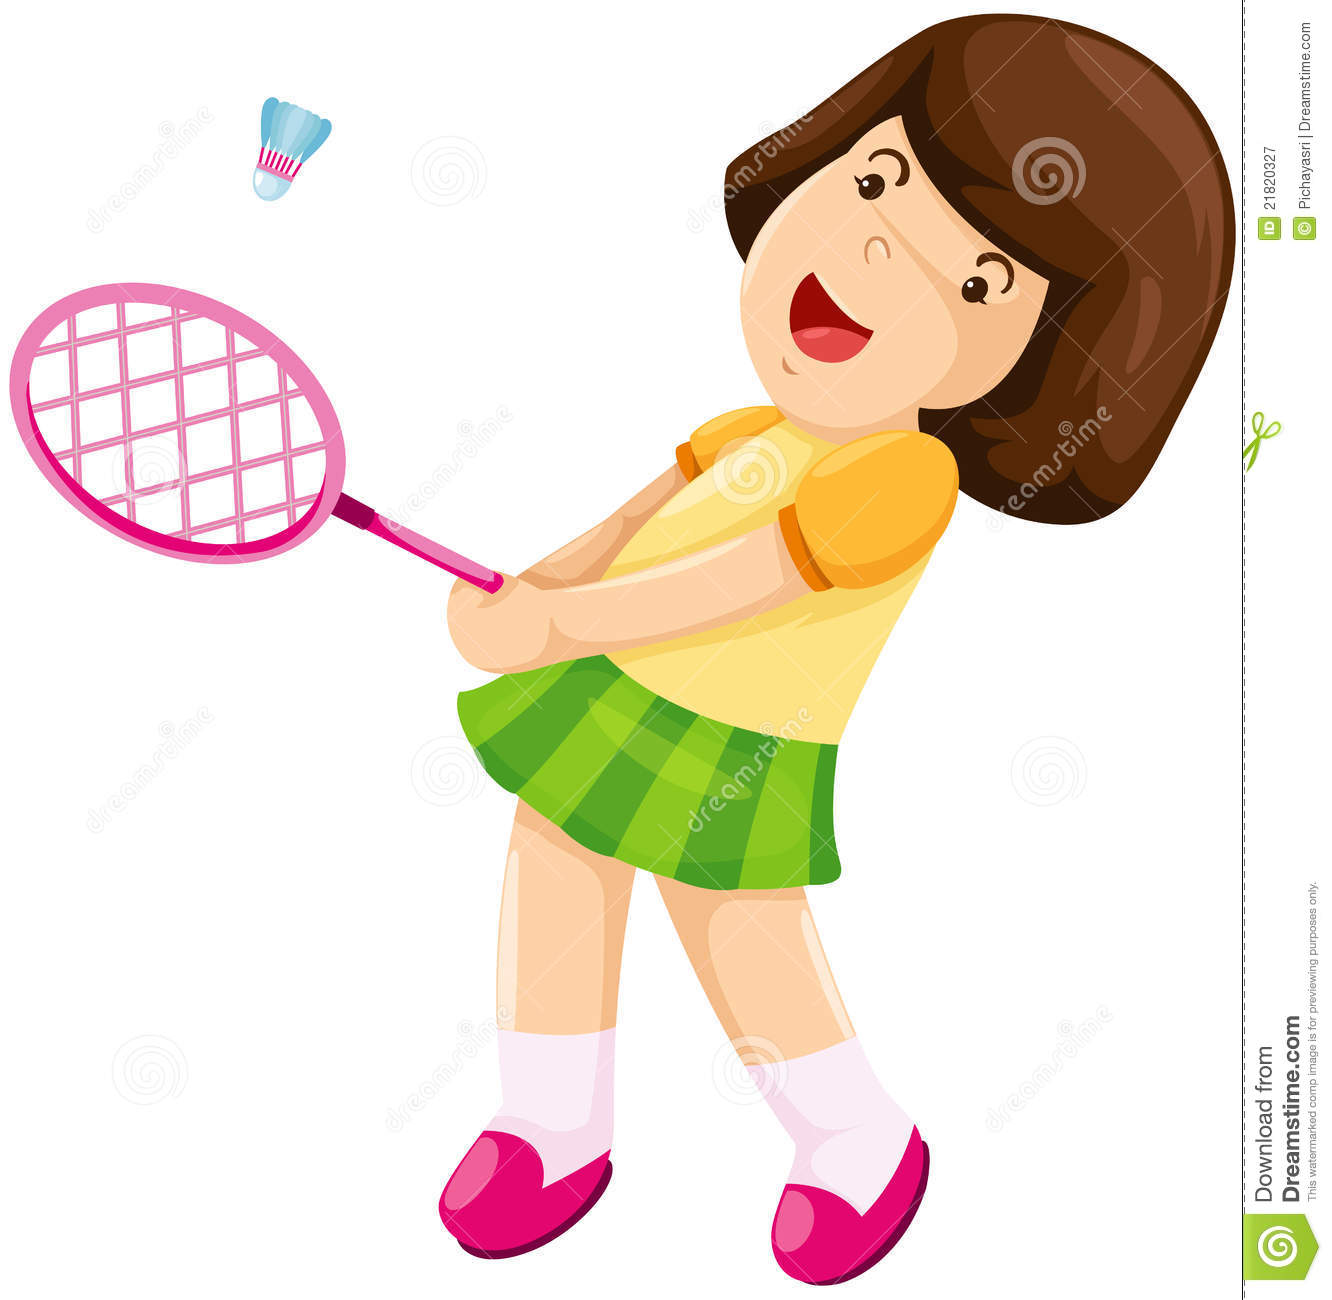 play badminton Sports that use a racket, such as badminton, may lower your risk of dying, says  study.